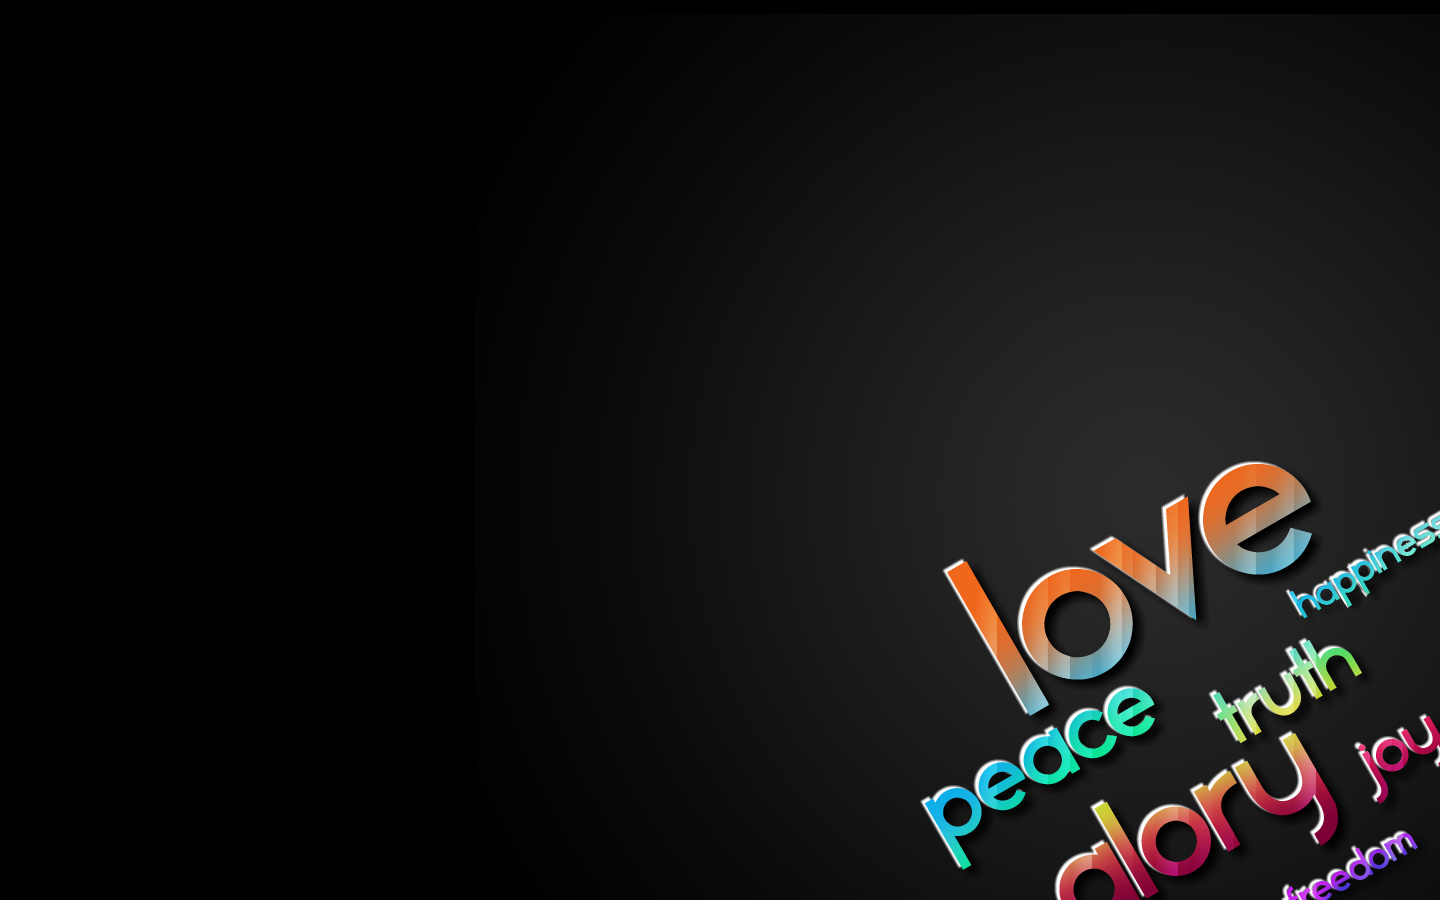 best love and peace wallpaper - photo #4